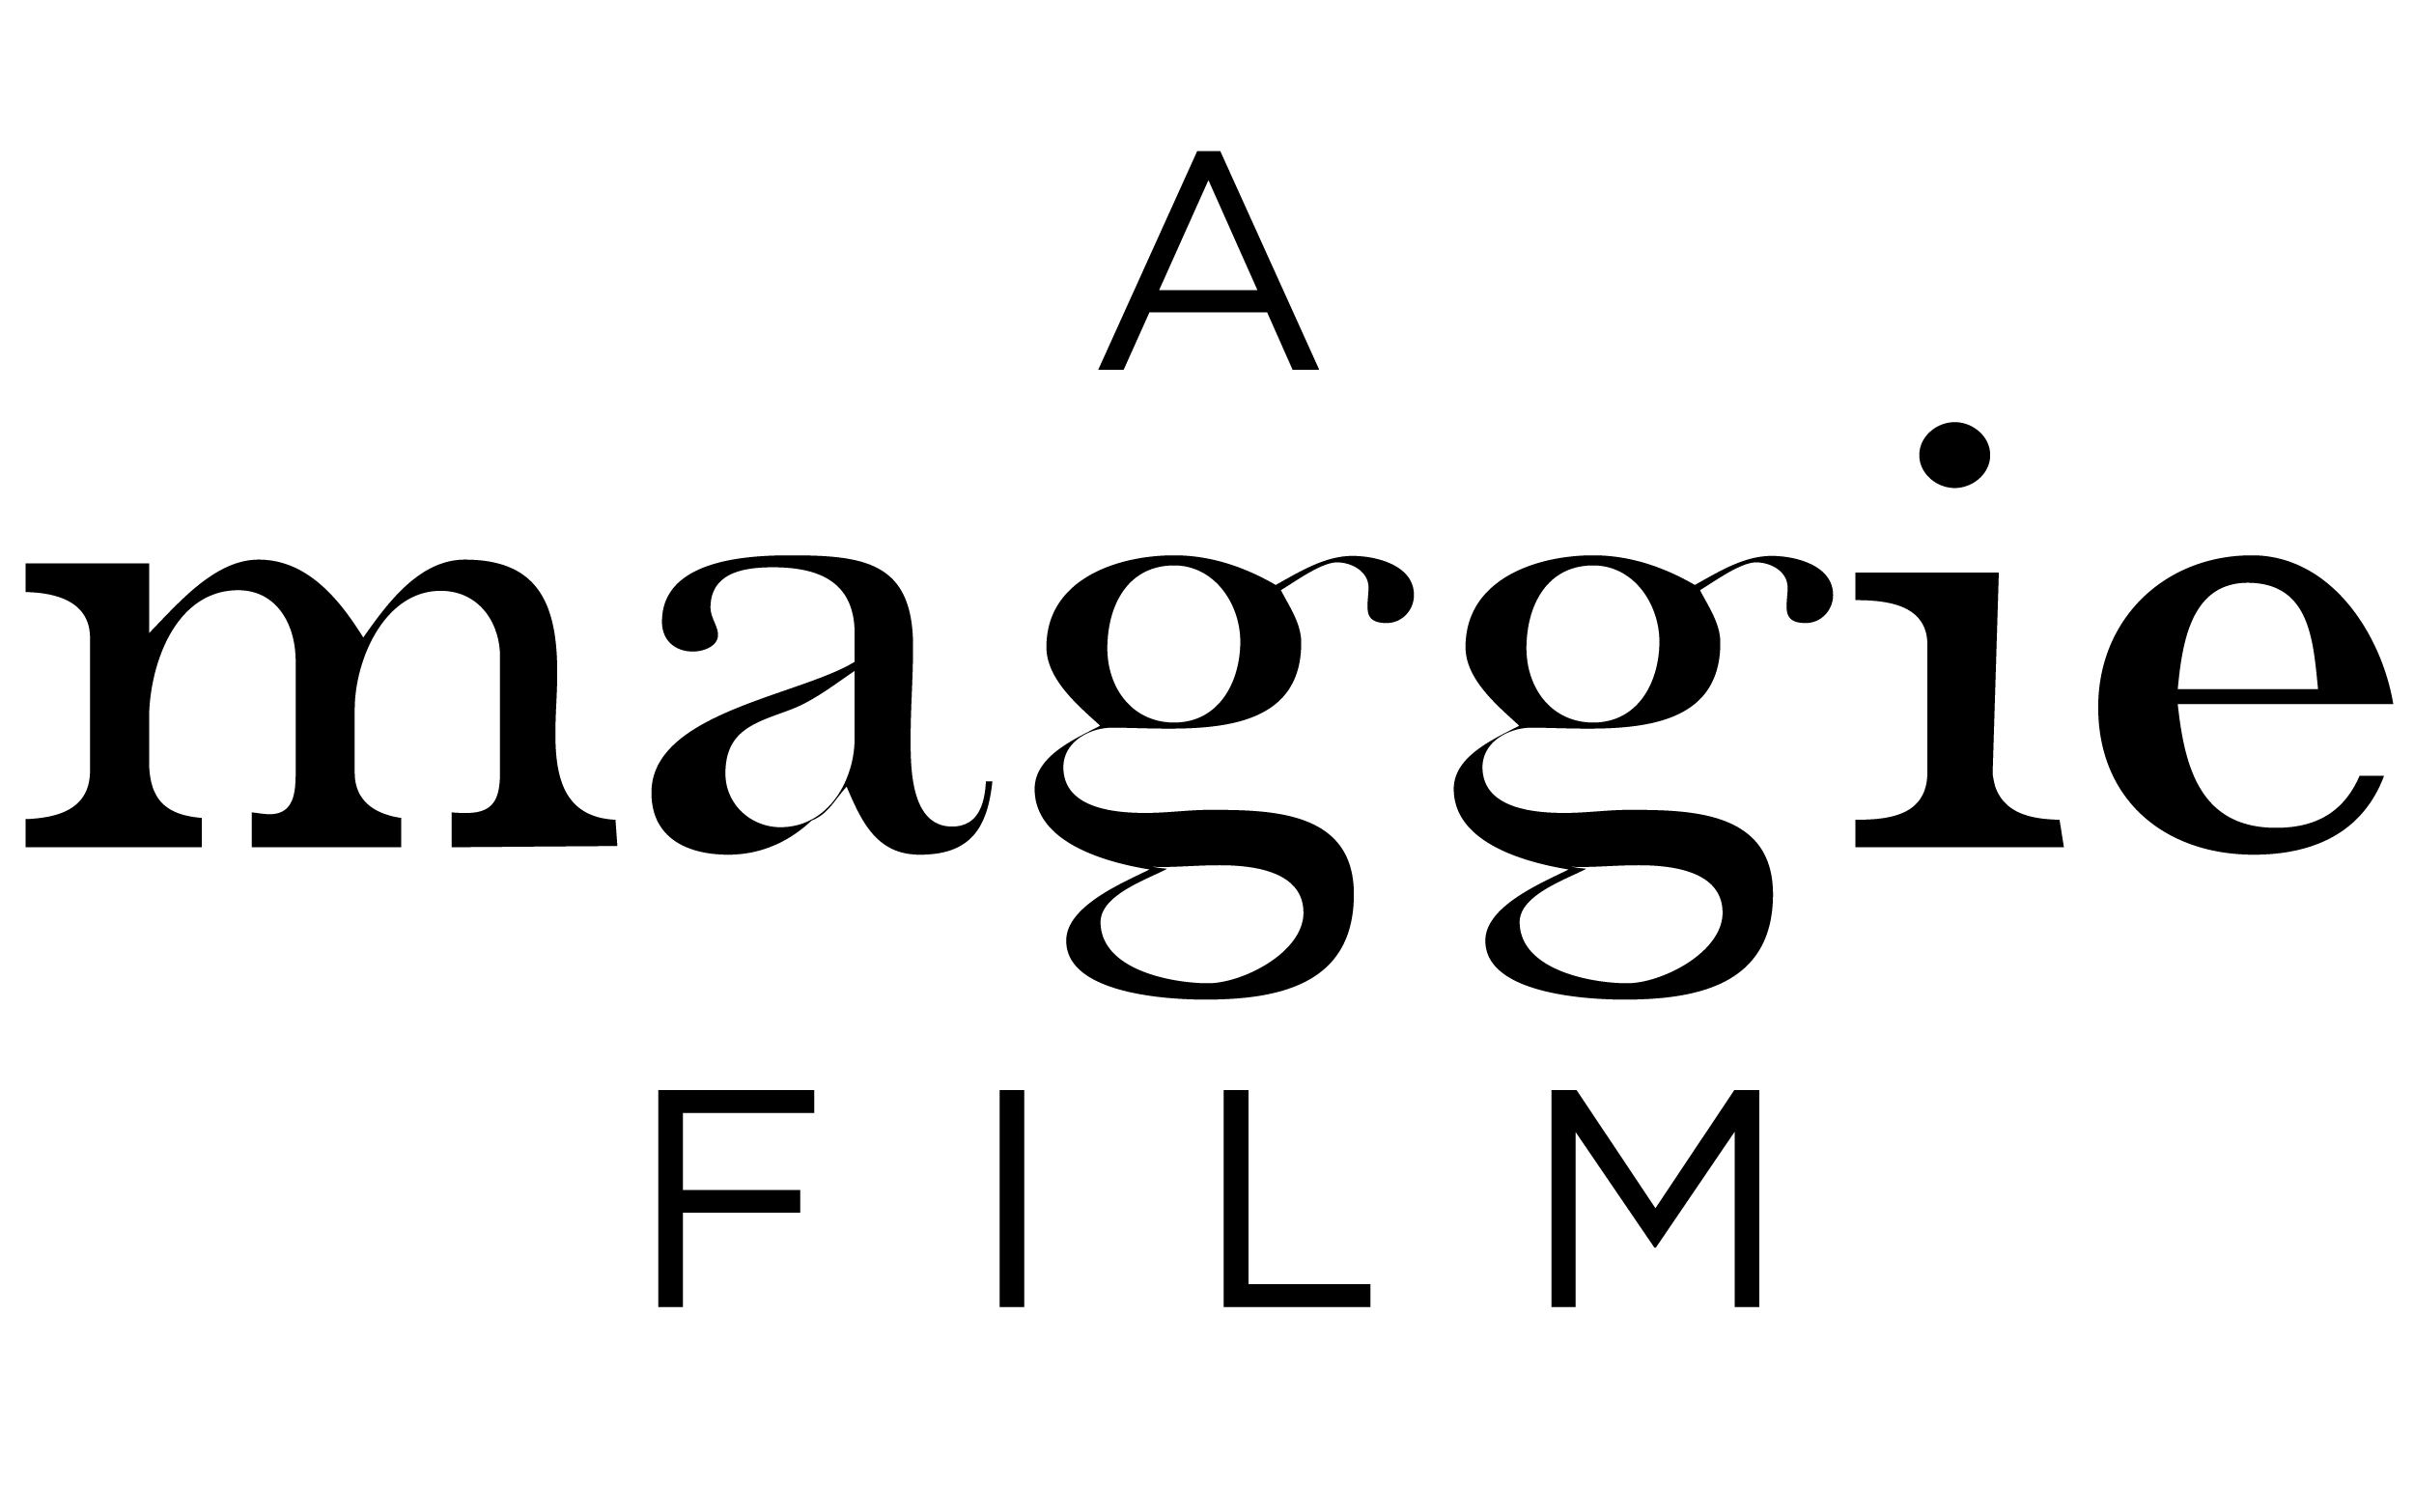 amaggiefilm_black.large.png